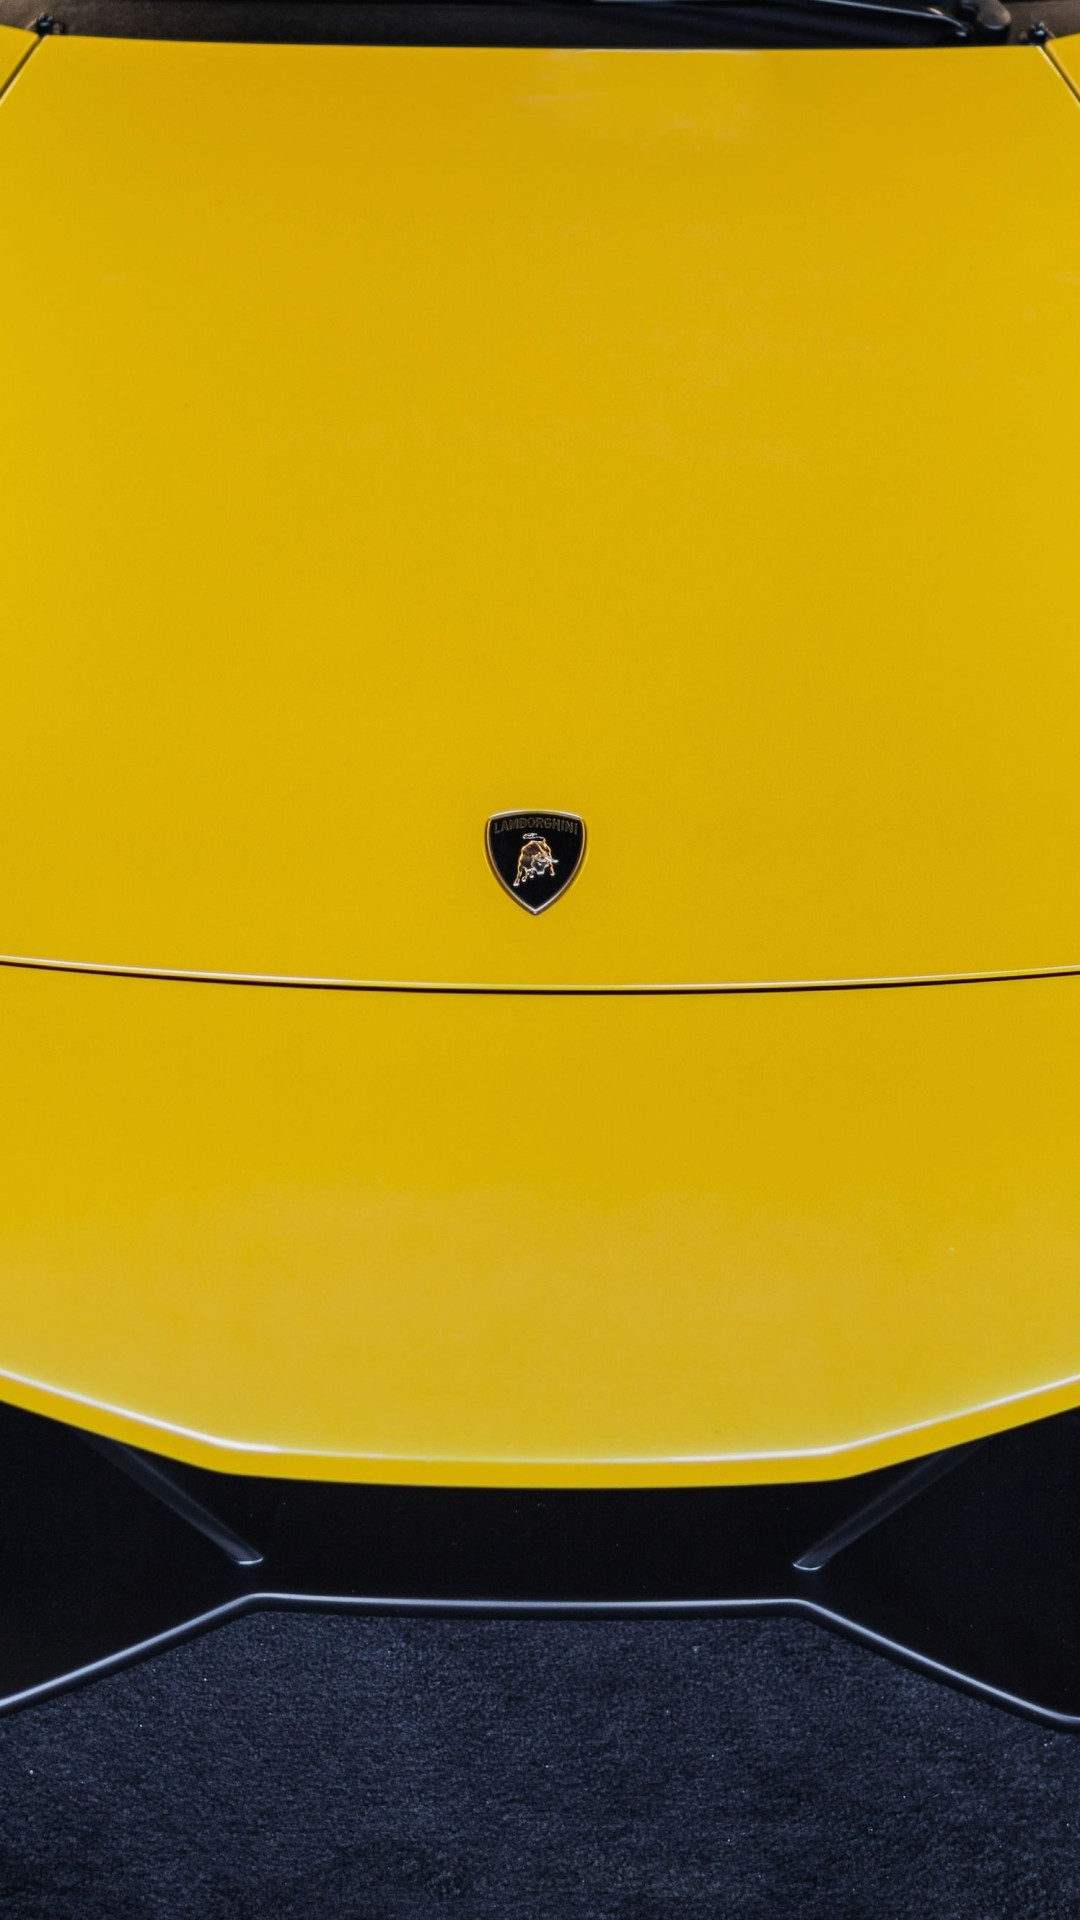 Lamborghini Murcielago LP670 Front Wallpaper for Google Nexus 5